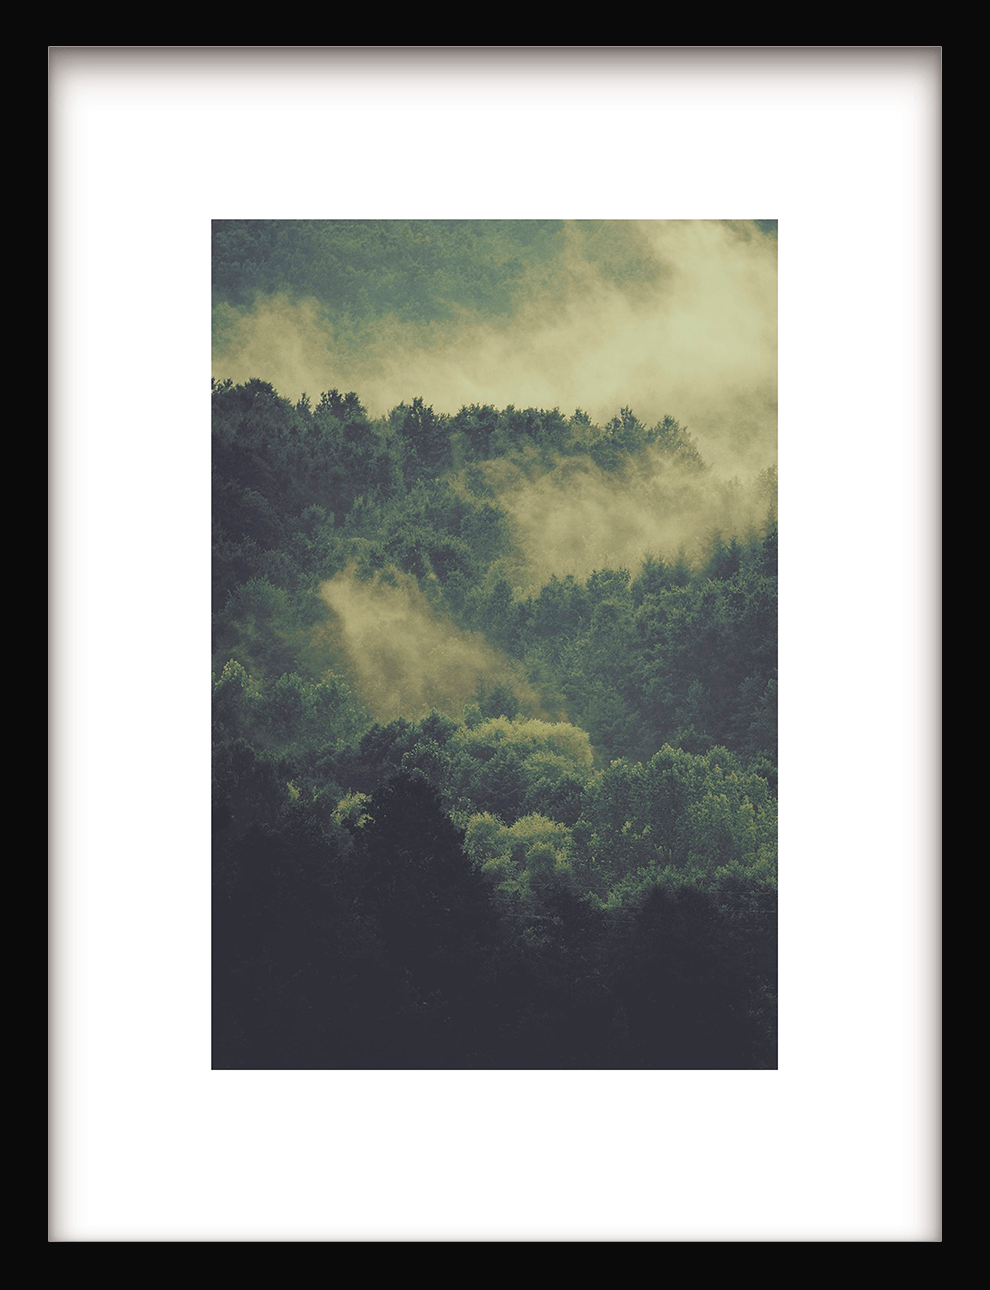 Green Foggy Forest